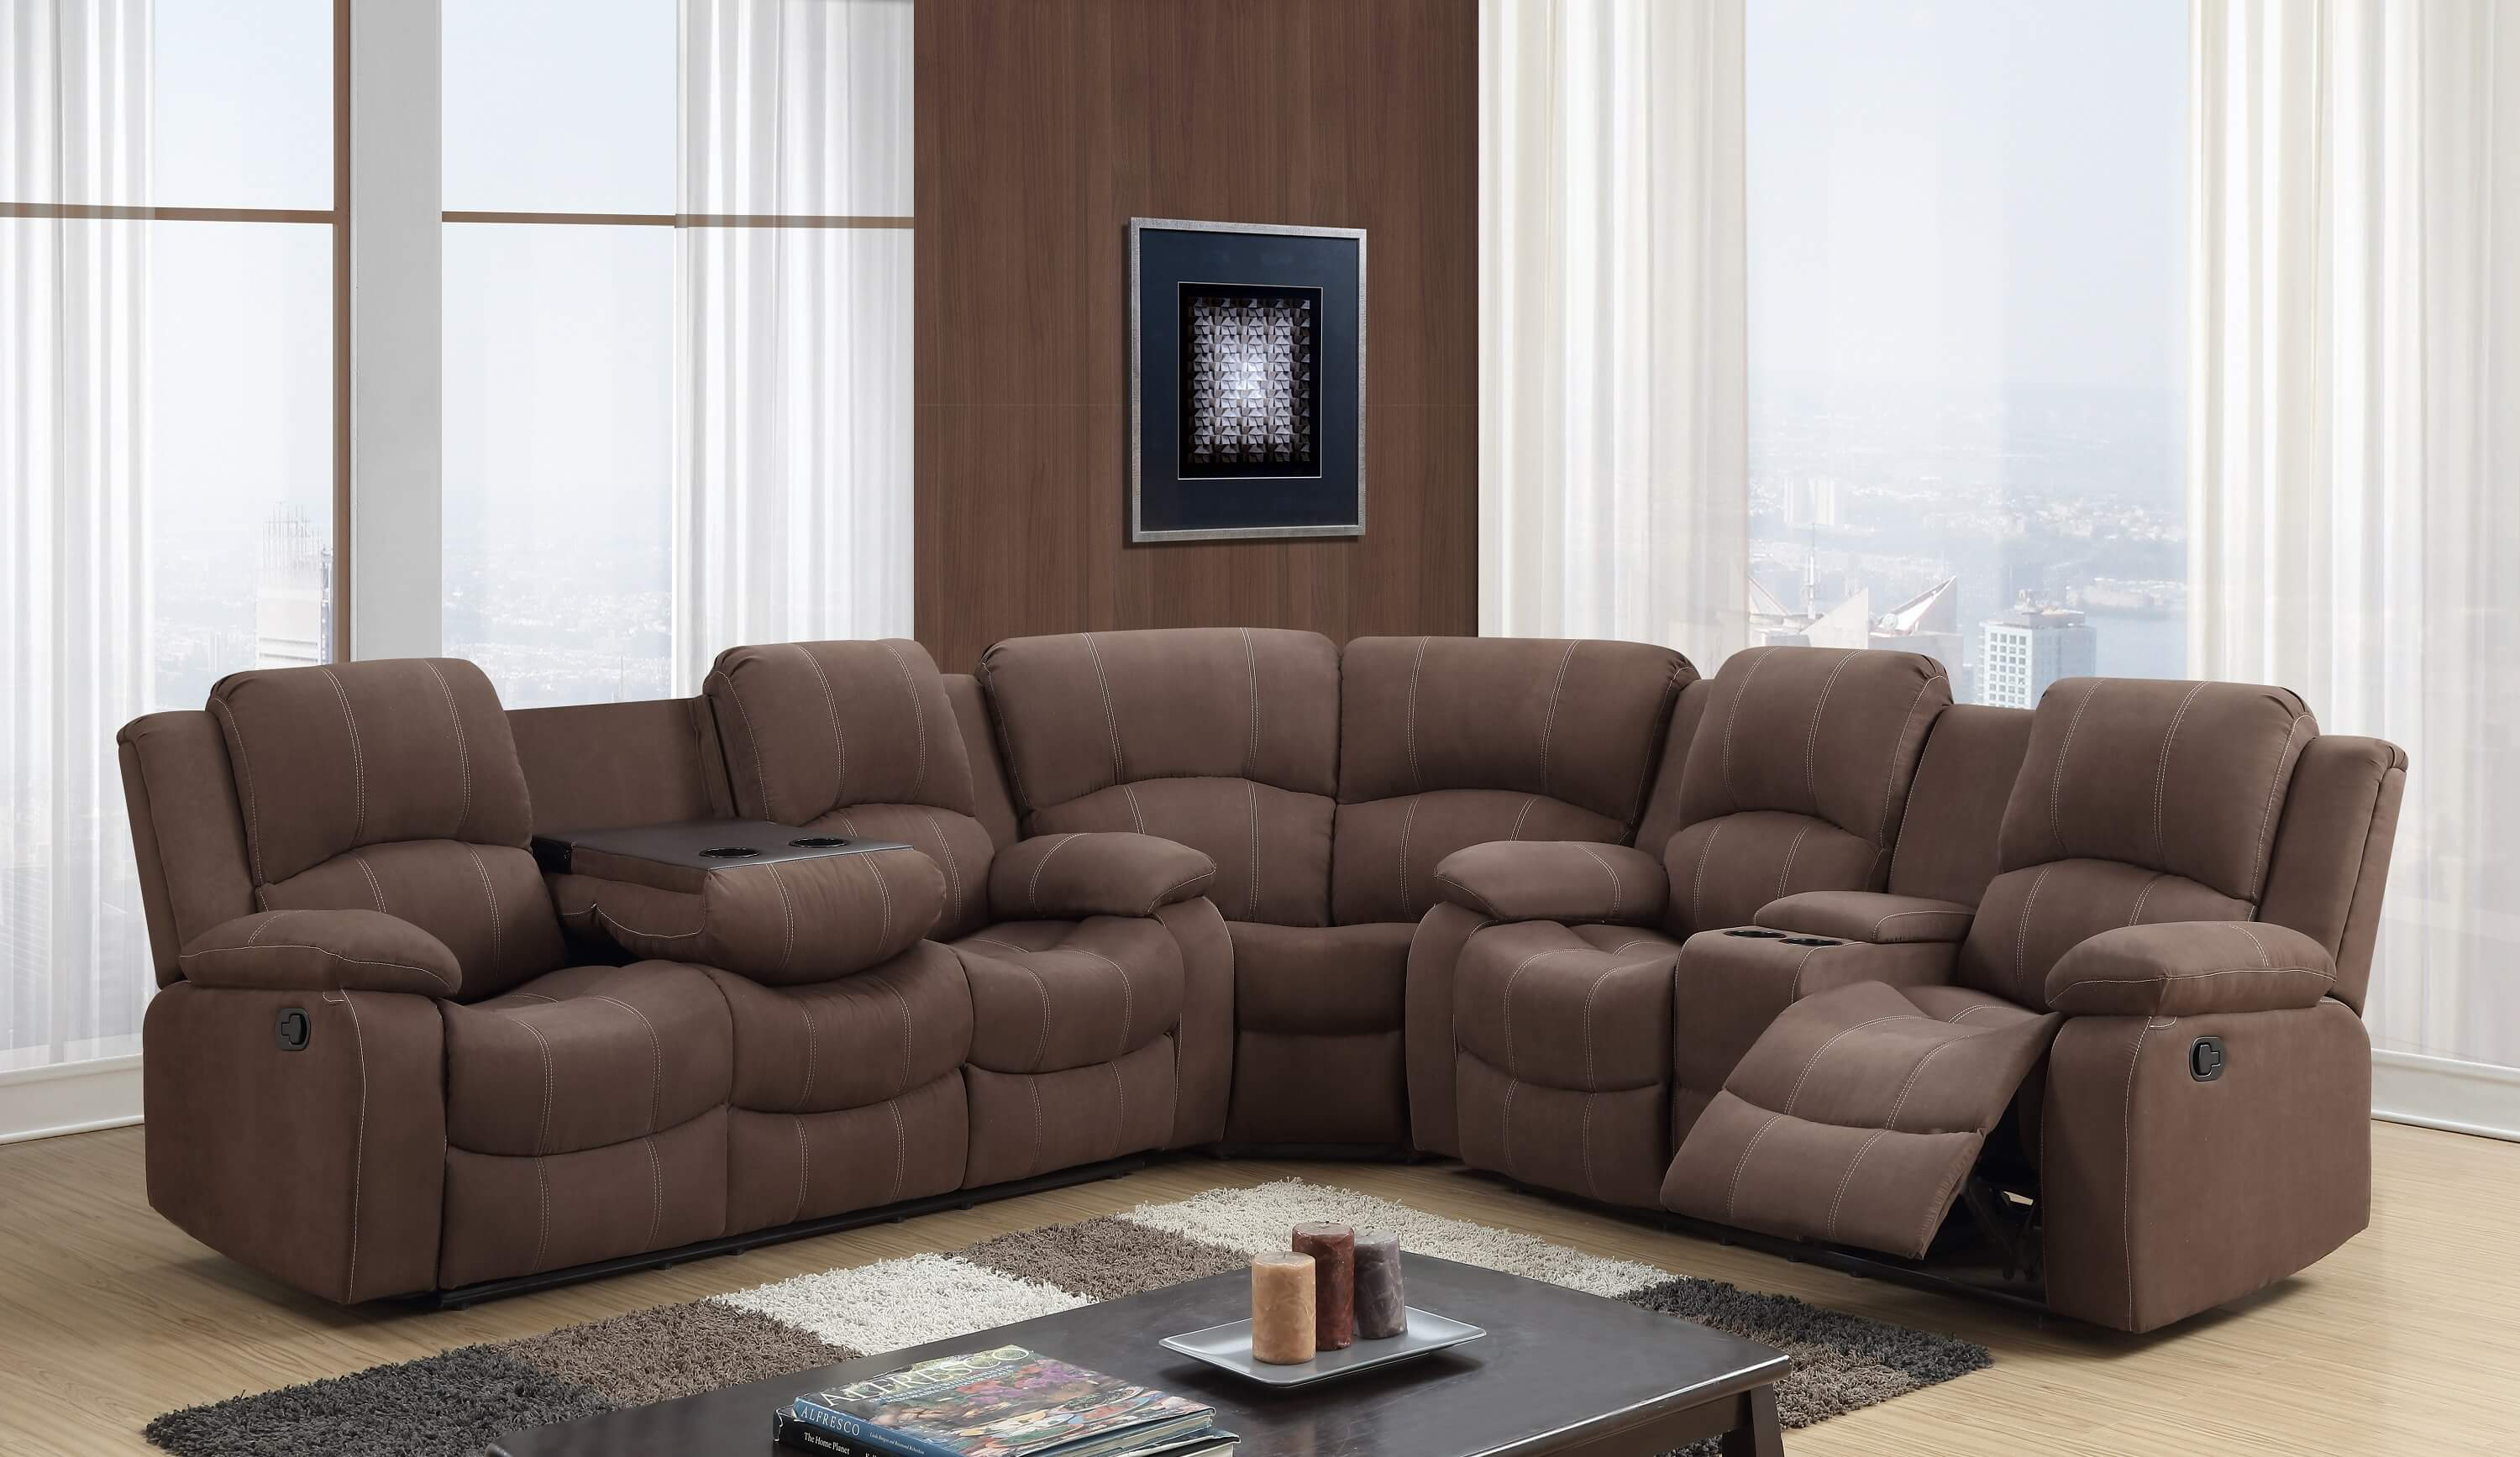 reviews leather reclining sacramento sectional pdx amax wayfair recliner furniture